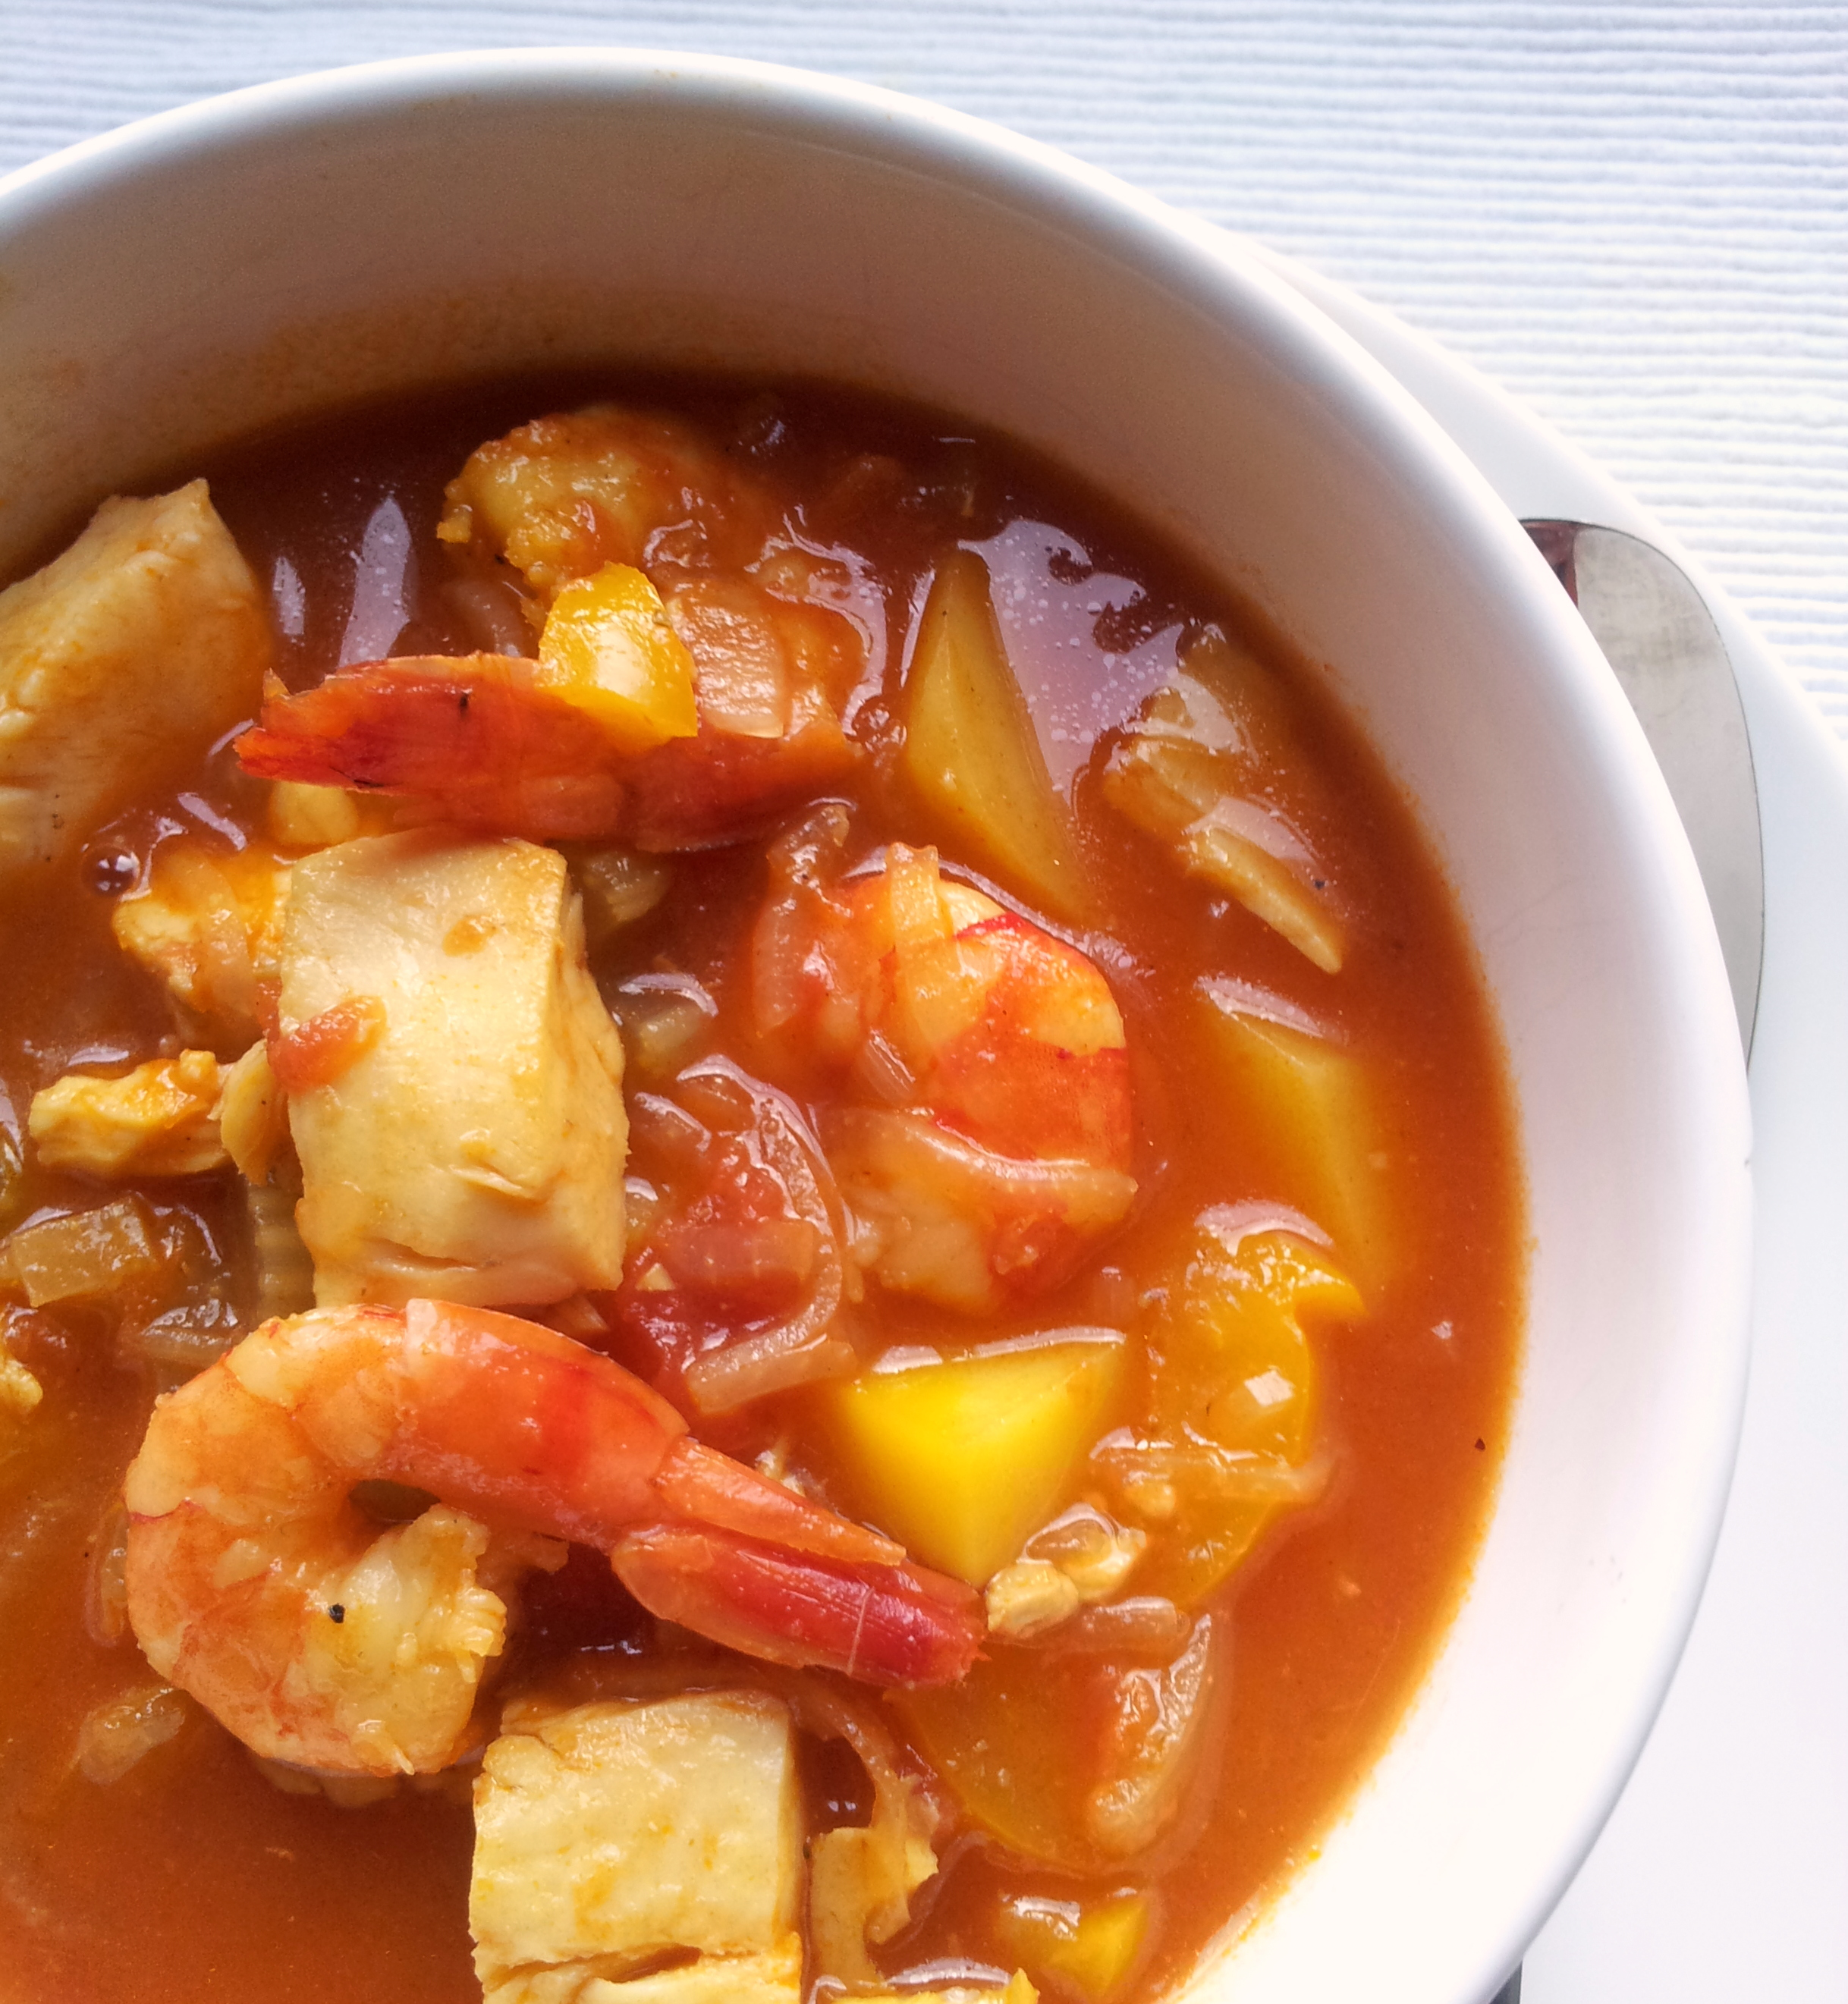 ... stew paula s moroccan lentil stew north african fish stew recipe